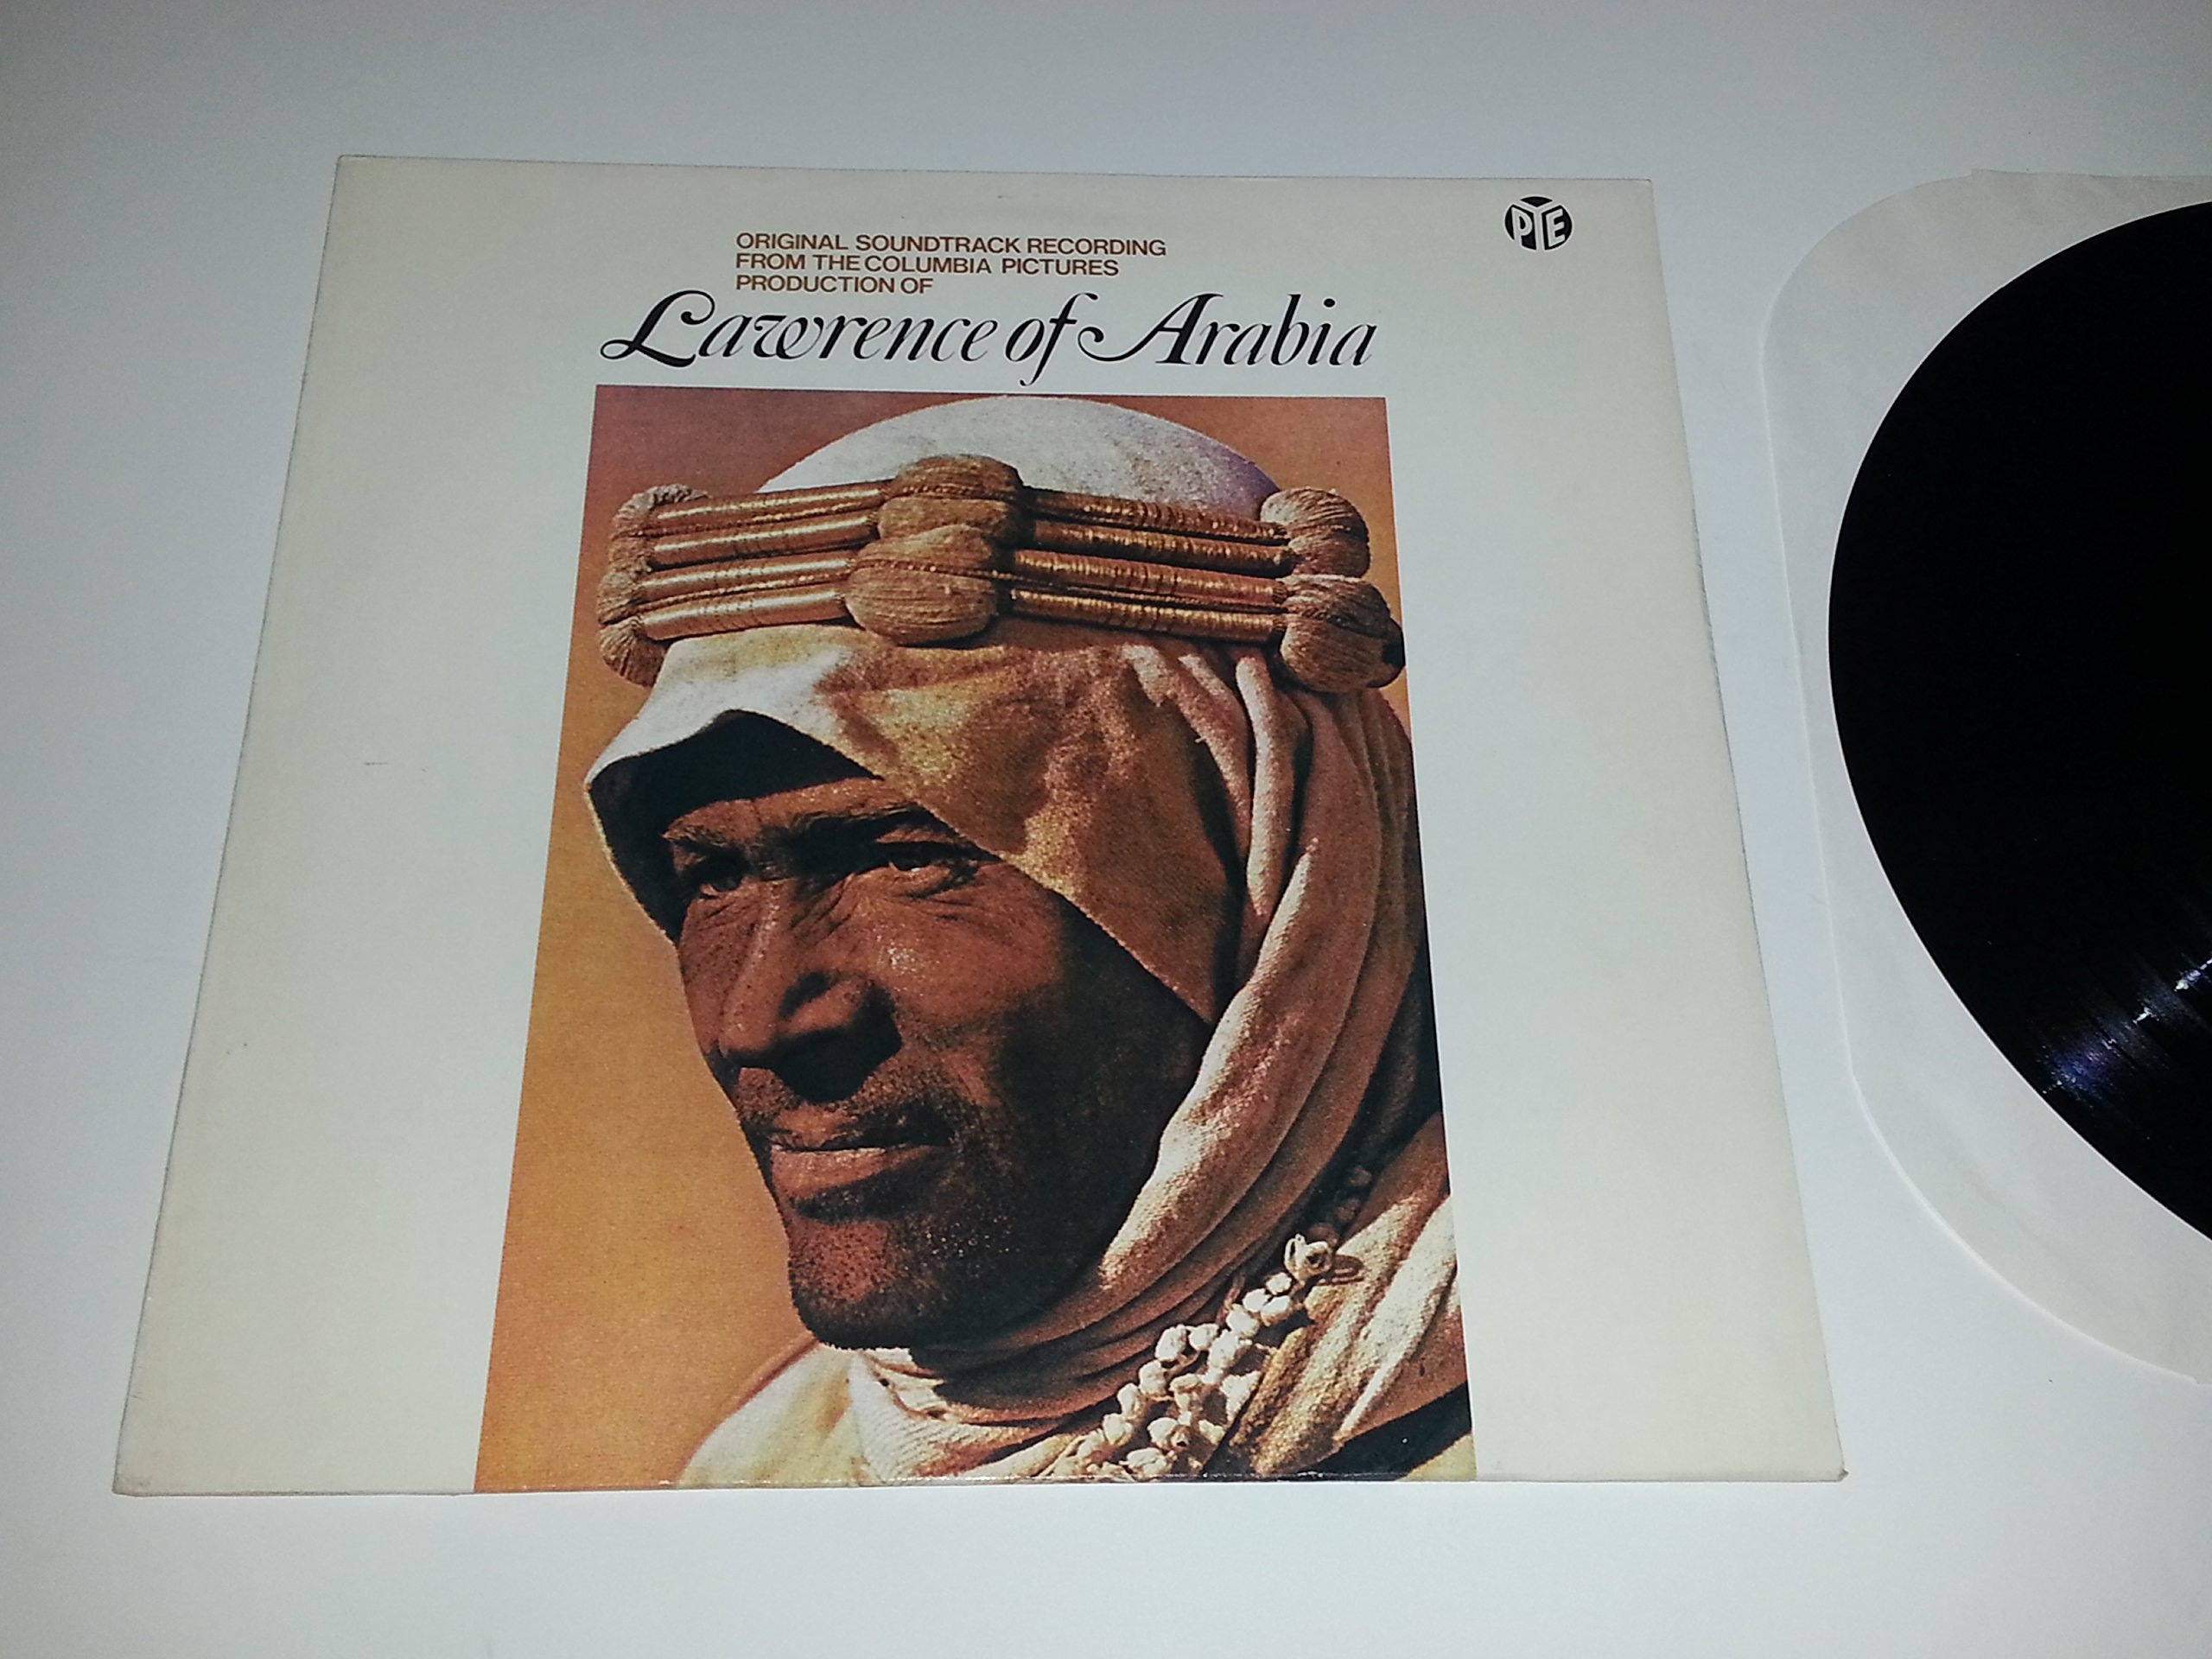 Lawrence of Arabia - Original Soundtrack Recording by Colpix Records (Image #2)